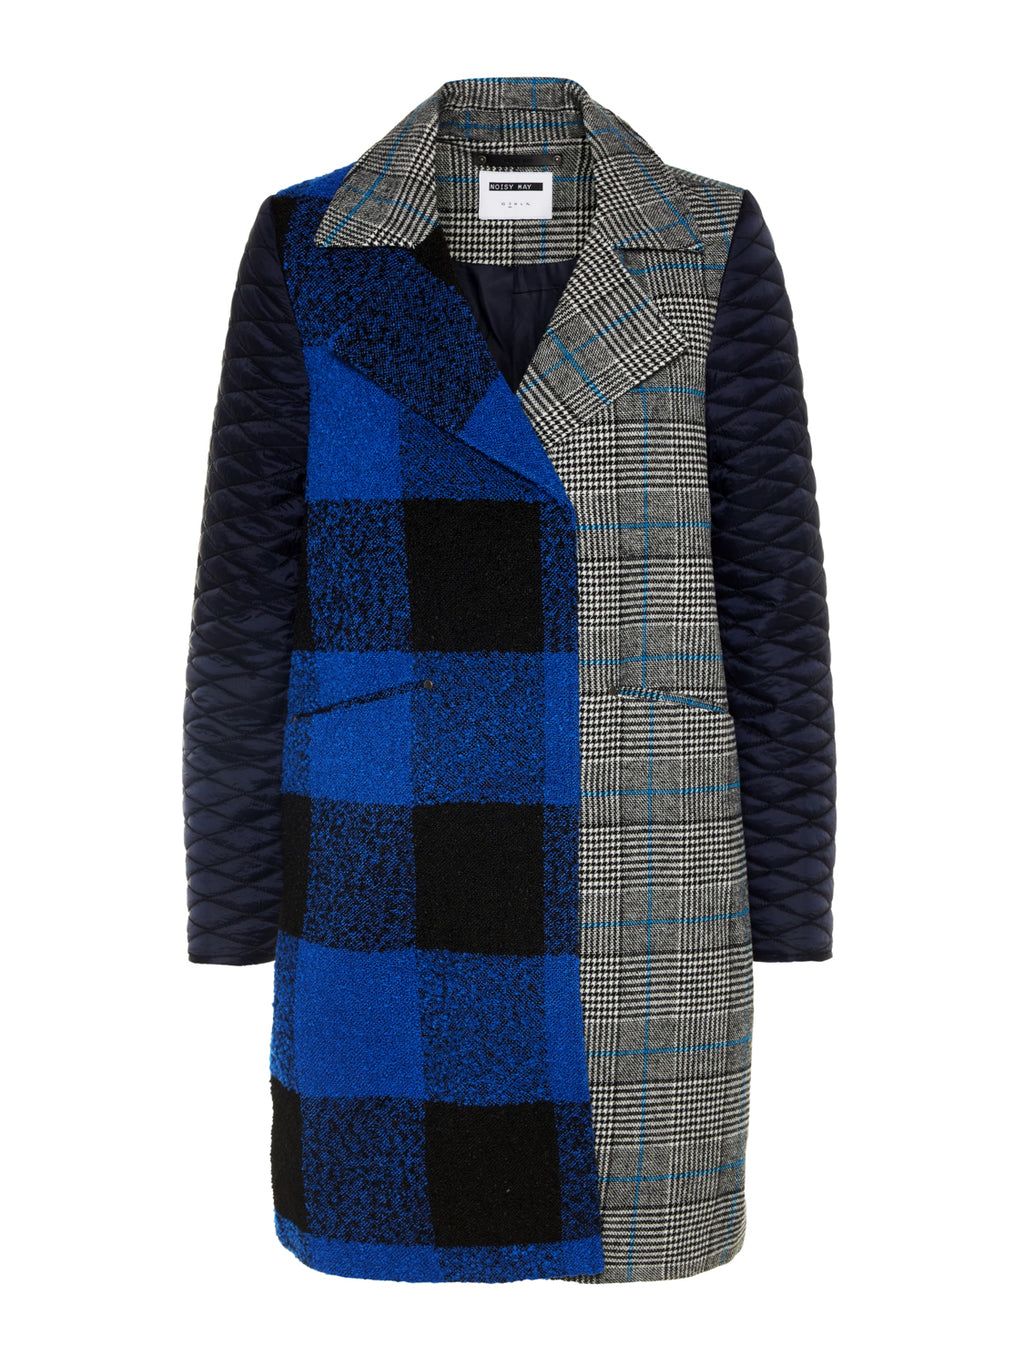 Shop Noisy May Blue Chequered Panelled Coat for Women at Coveted Style